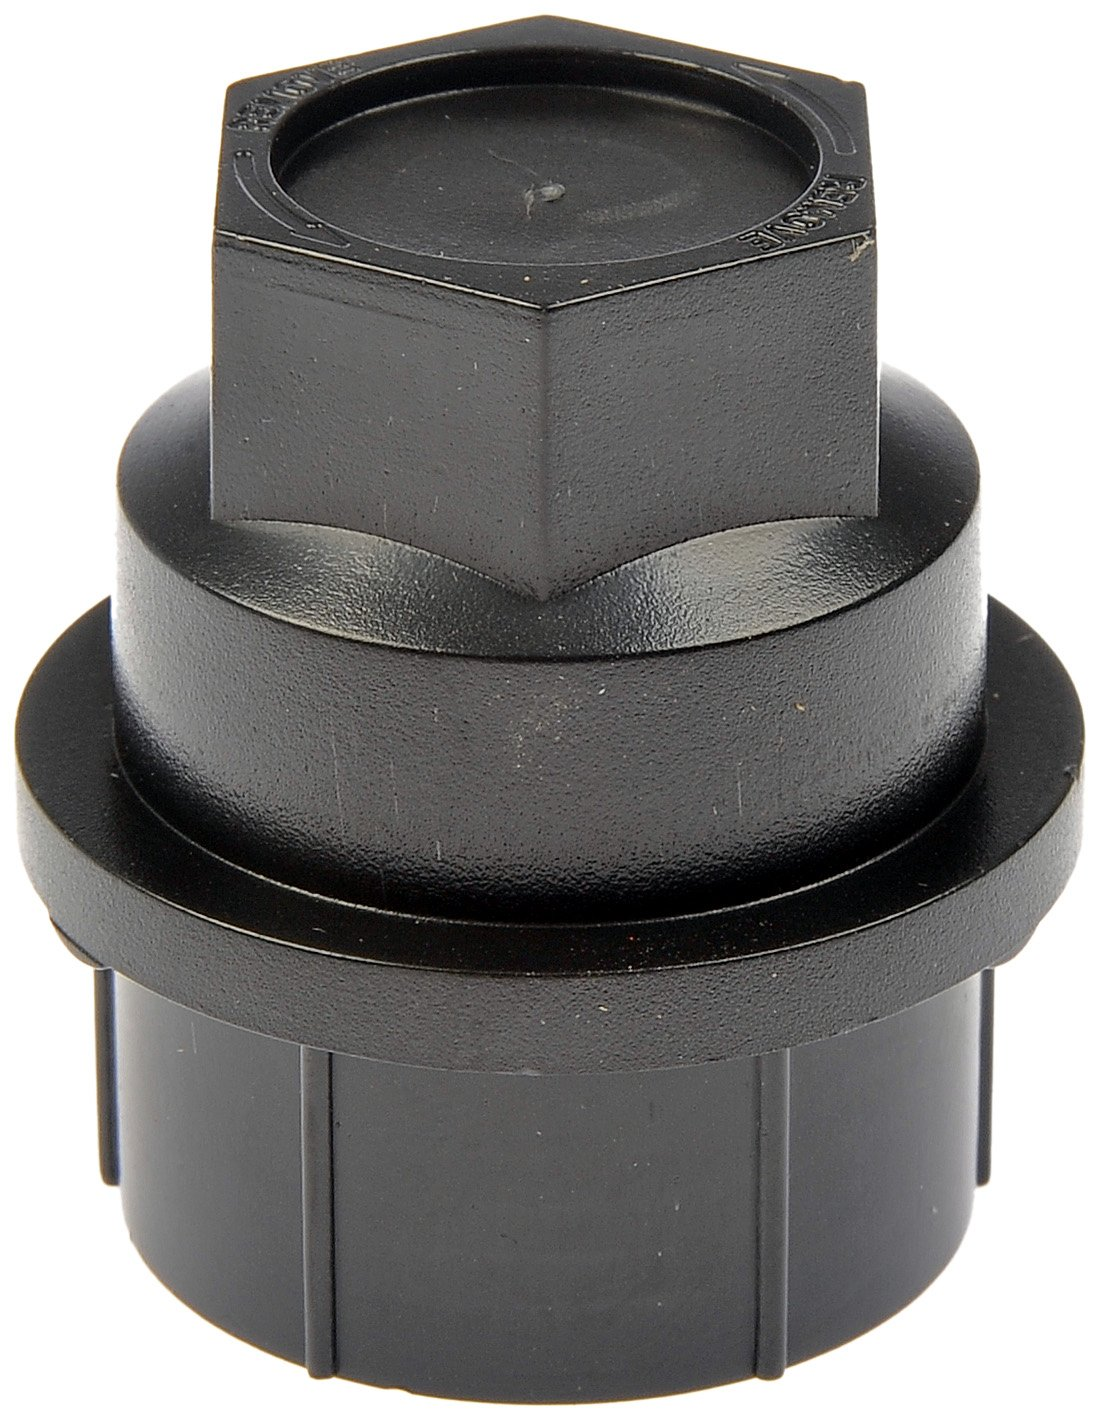 Dorman 711-025 Black Wheel Nut Cover - M27-2.0, Pack of 4